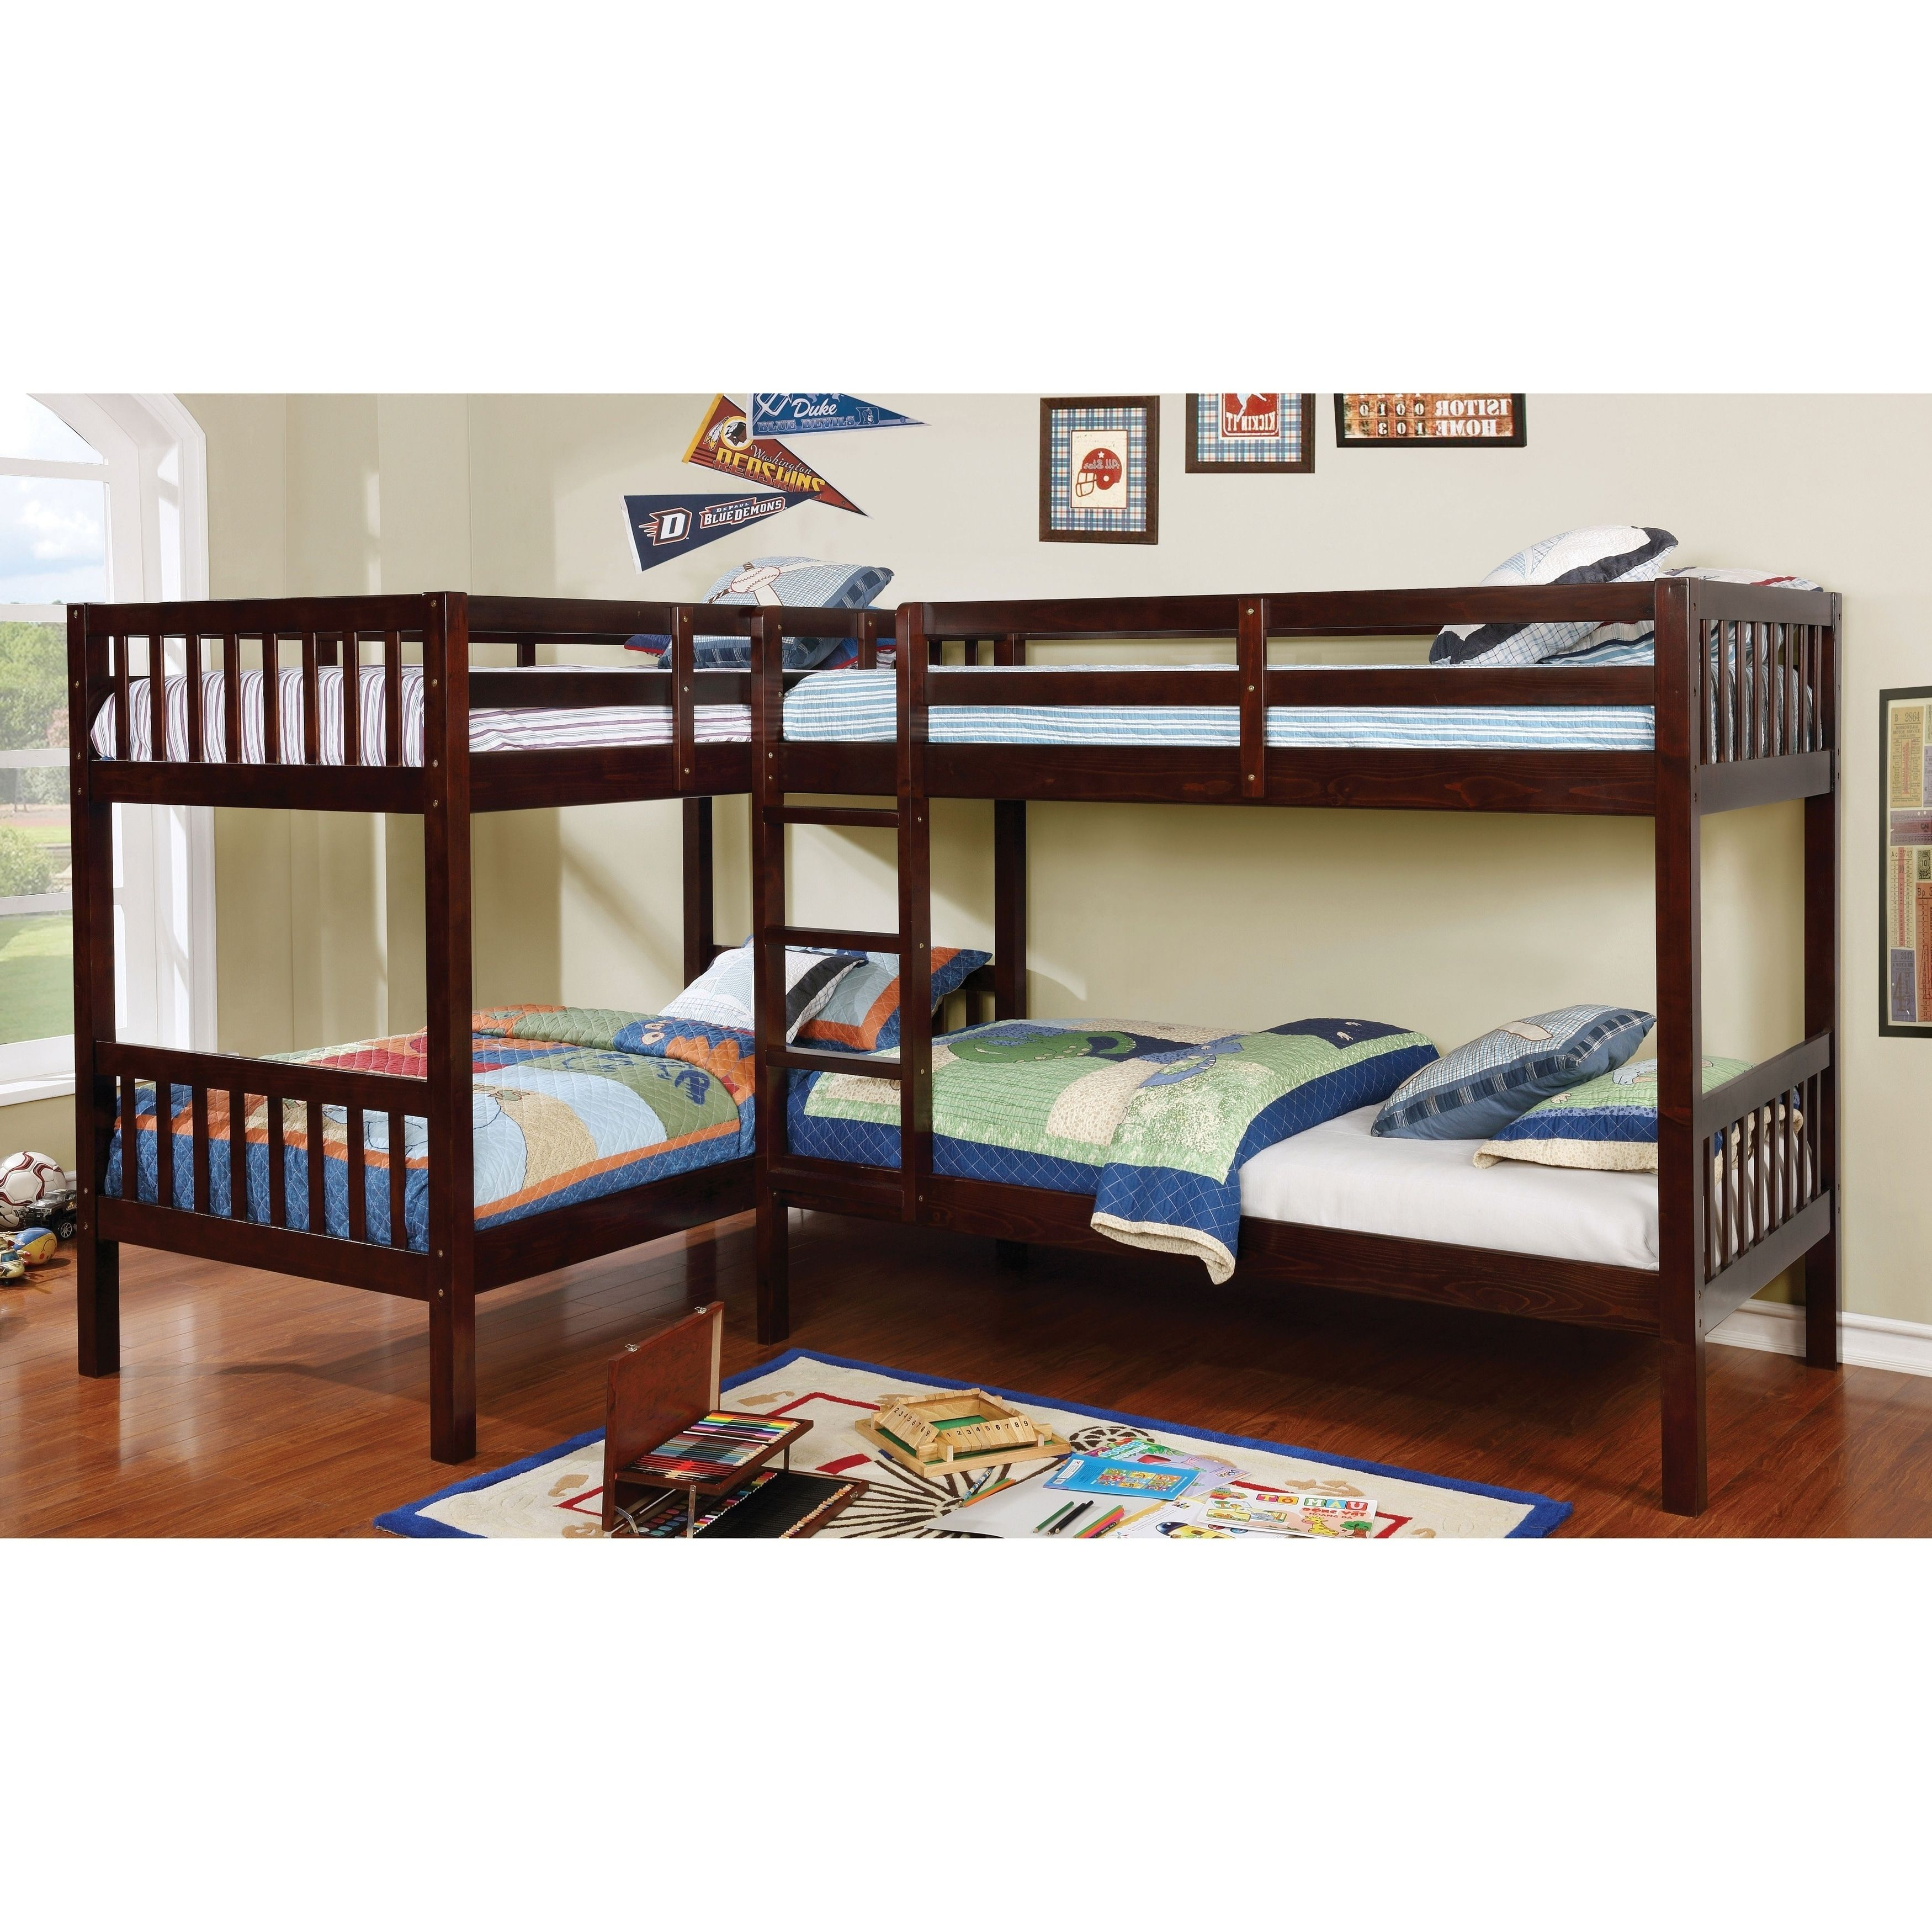 Furniture of America Jis Modern Twin Solid Wood Lshaped